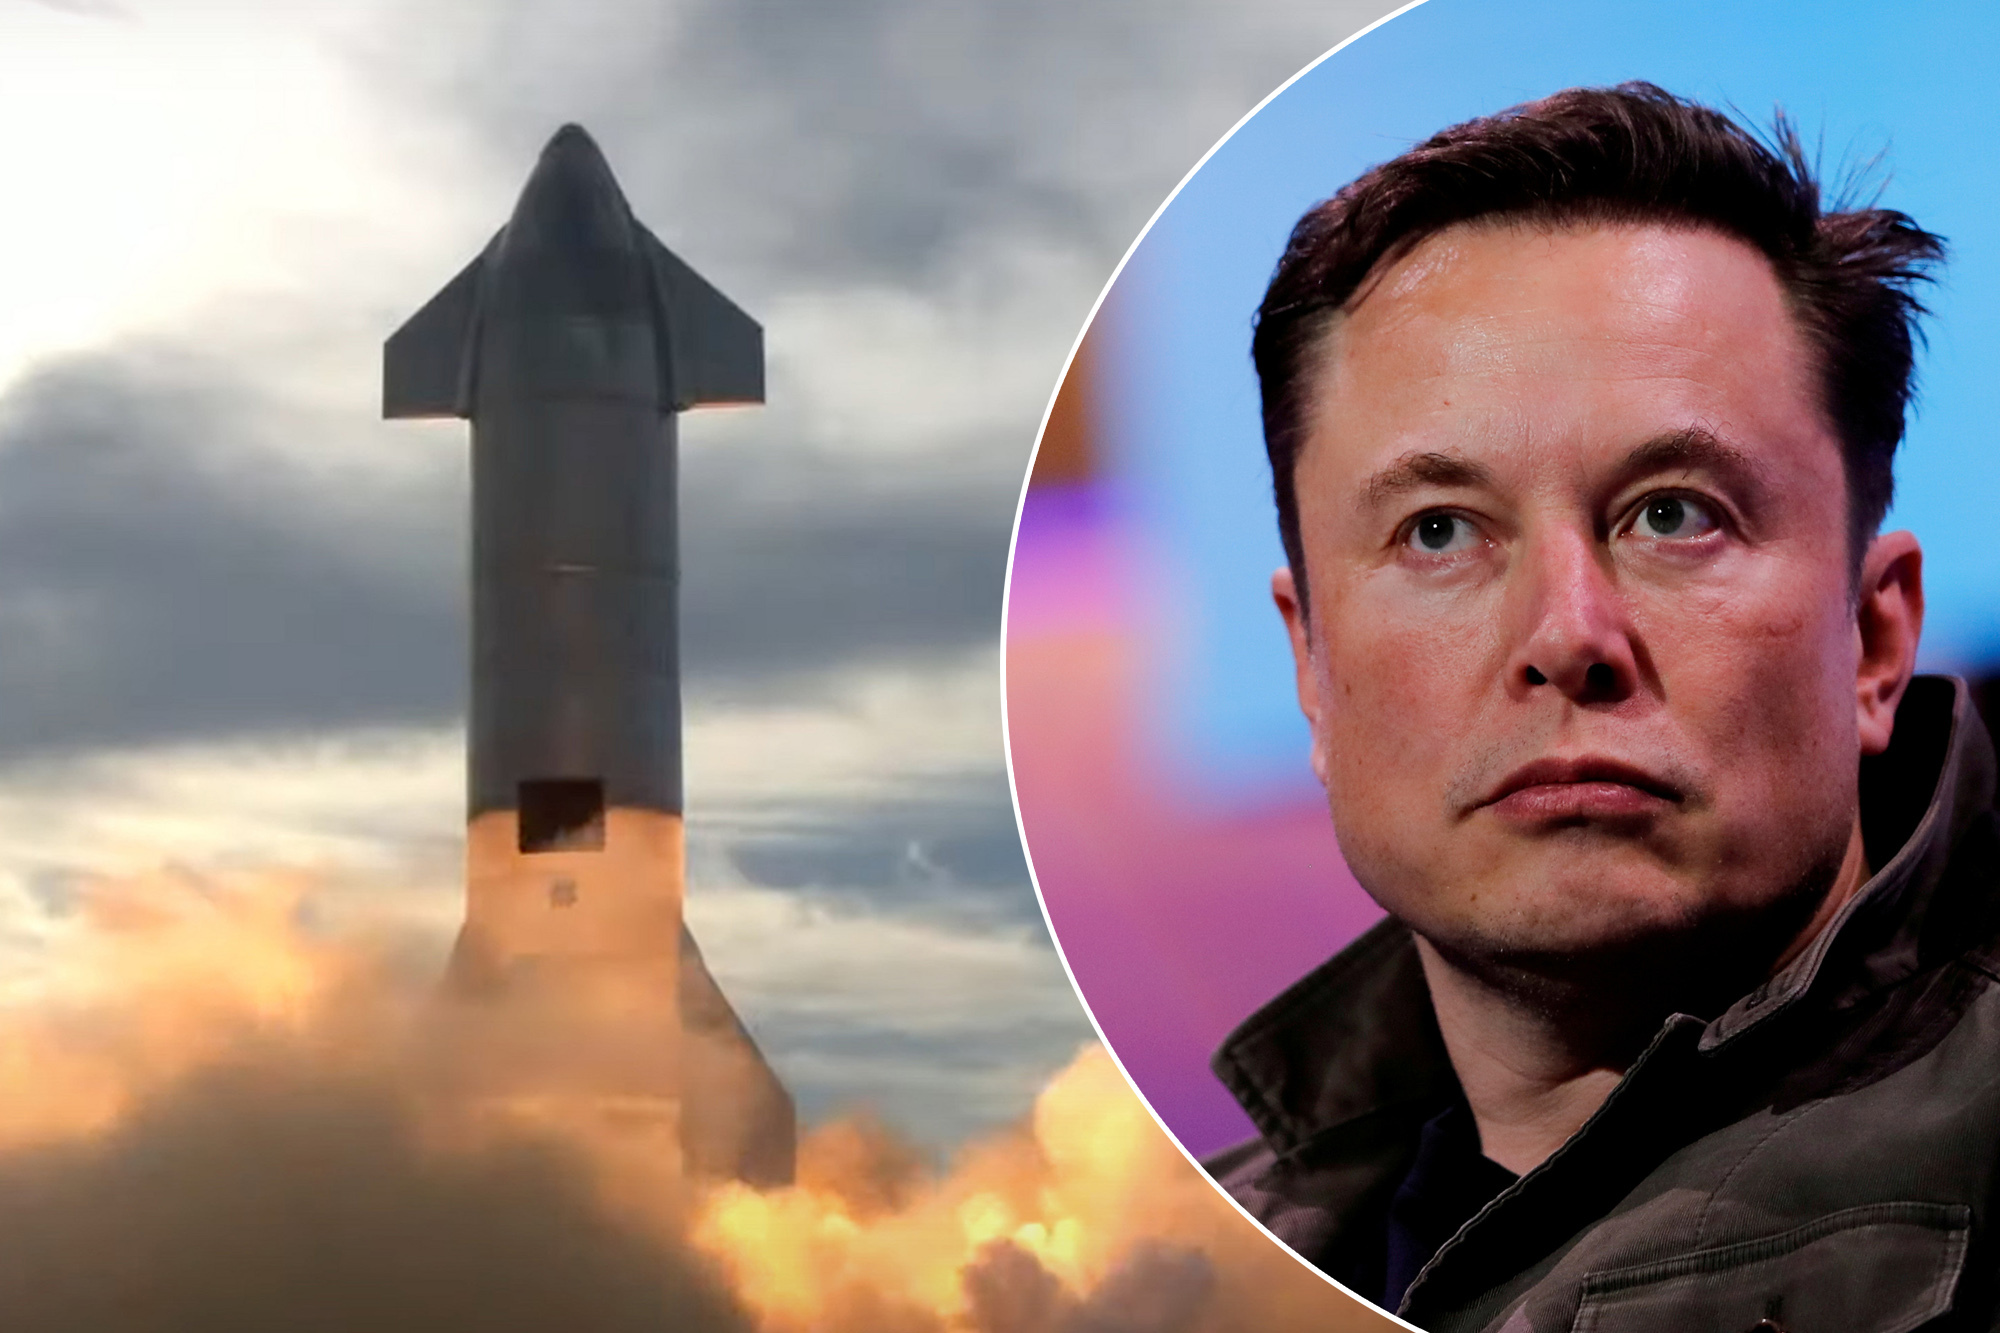 Elon Musk on Mars: 'You may not come back alive'